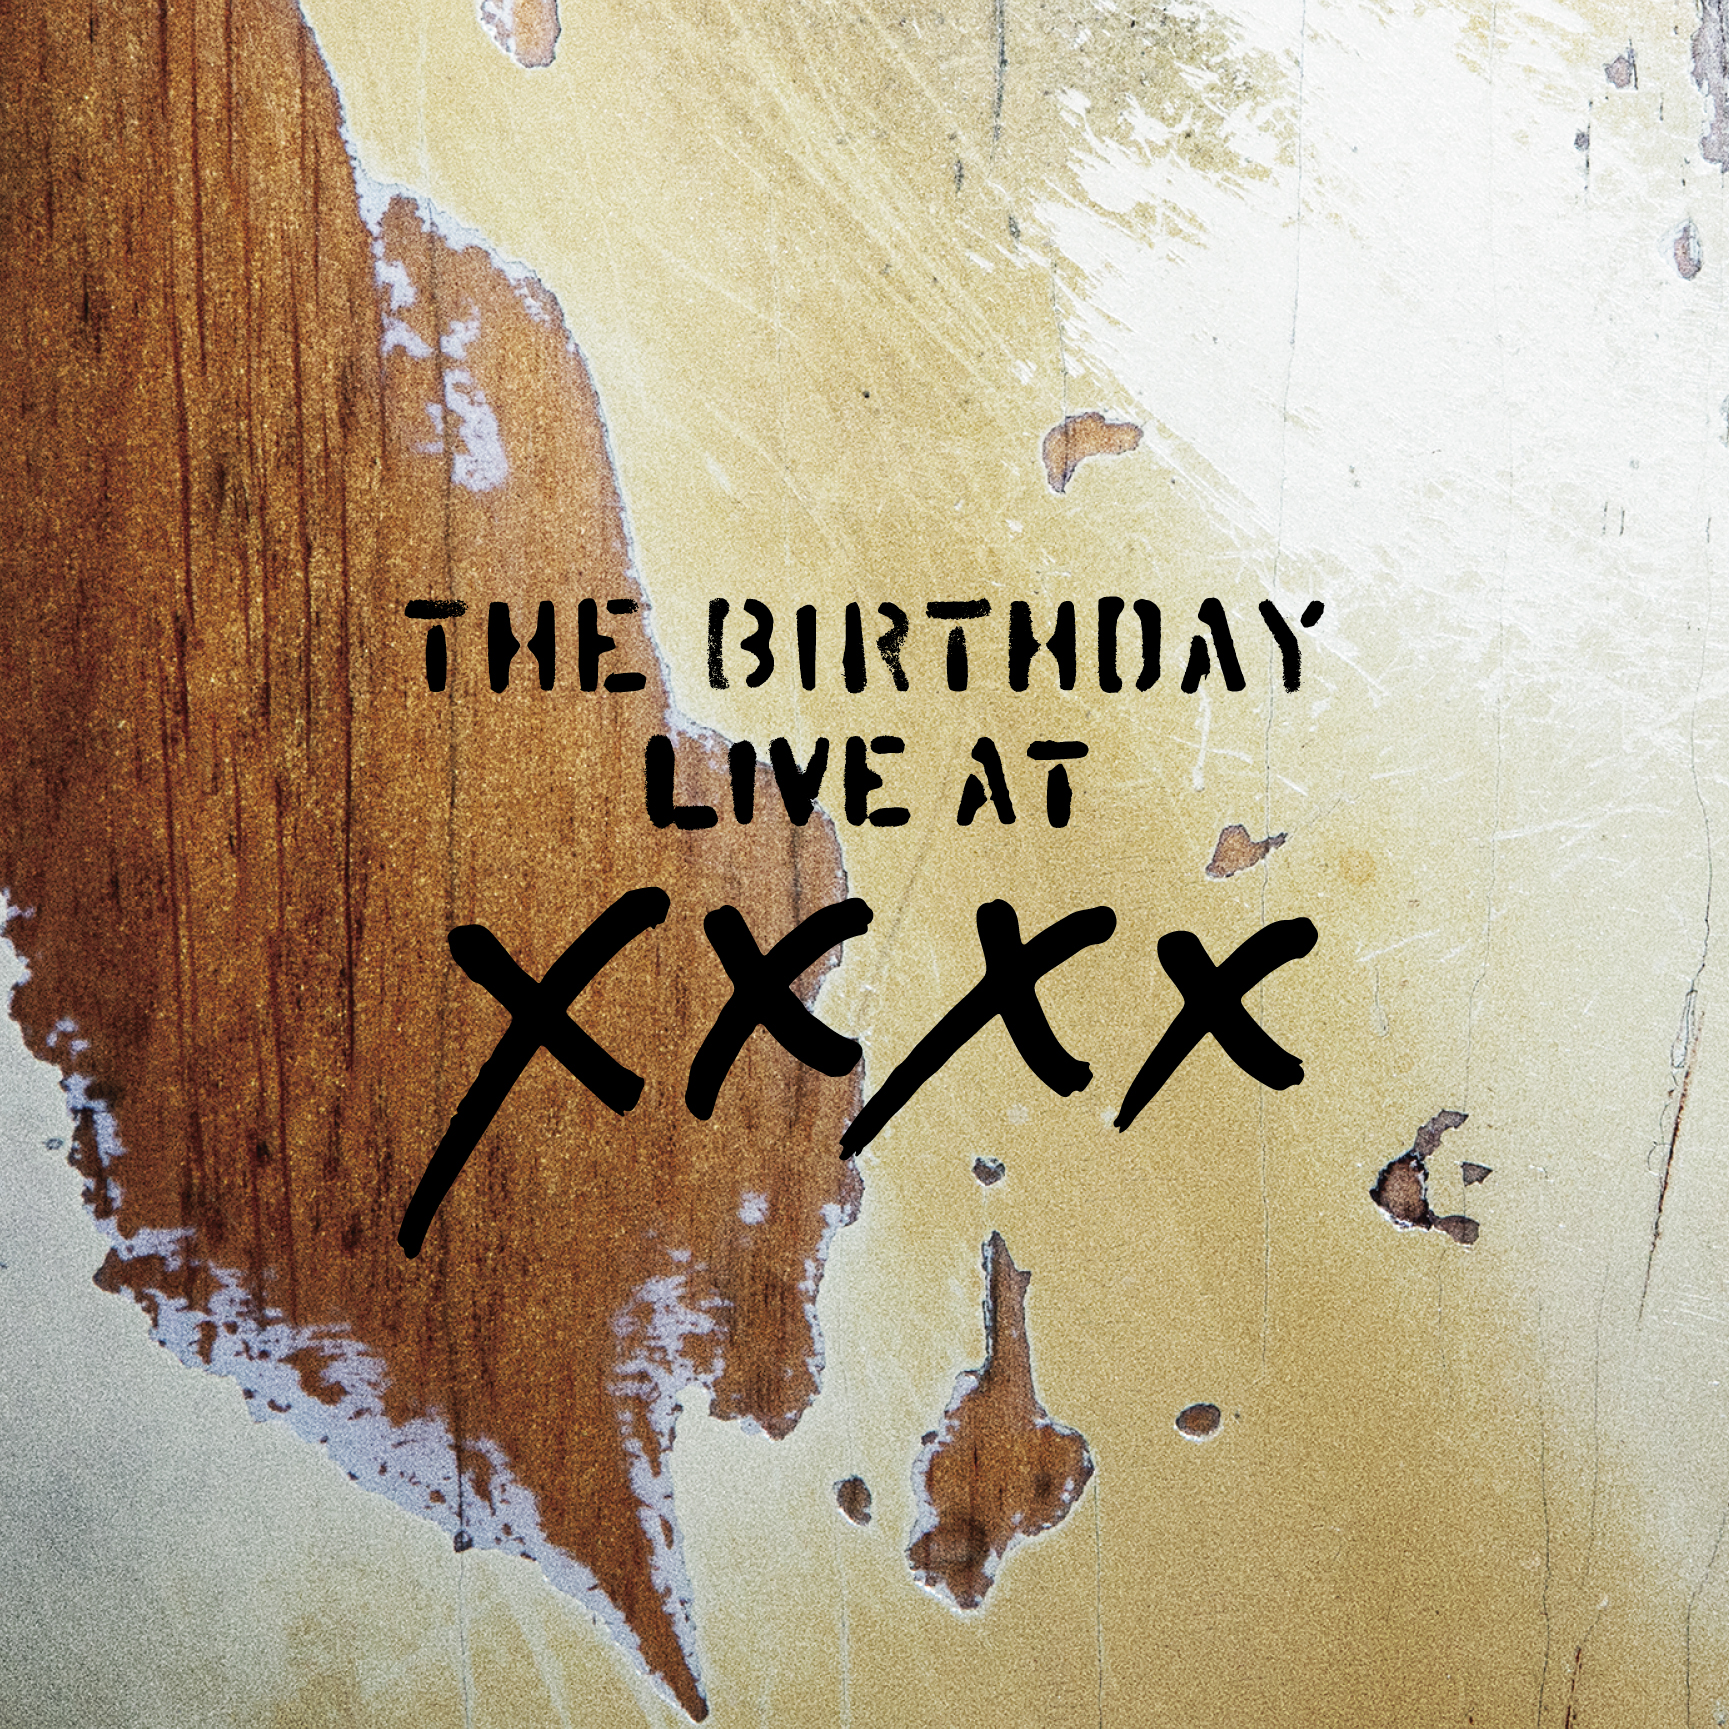 The Birthday 「LIVE AT XXXX」